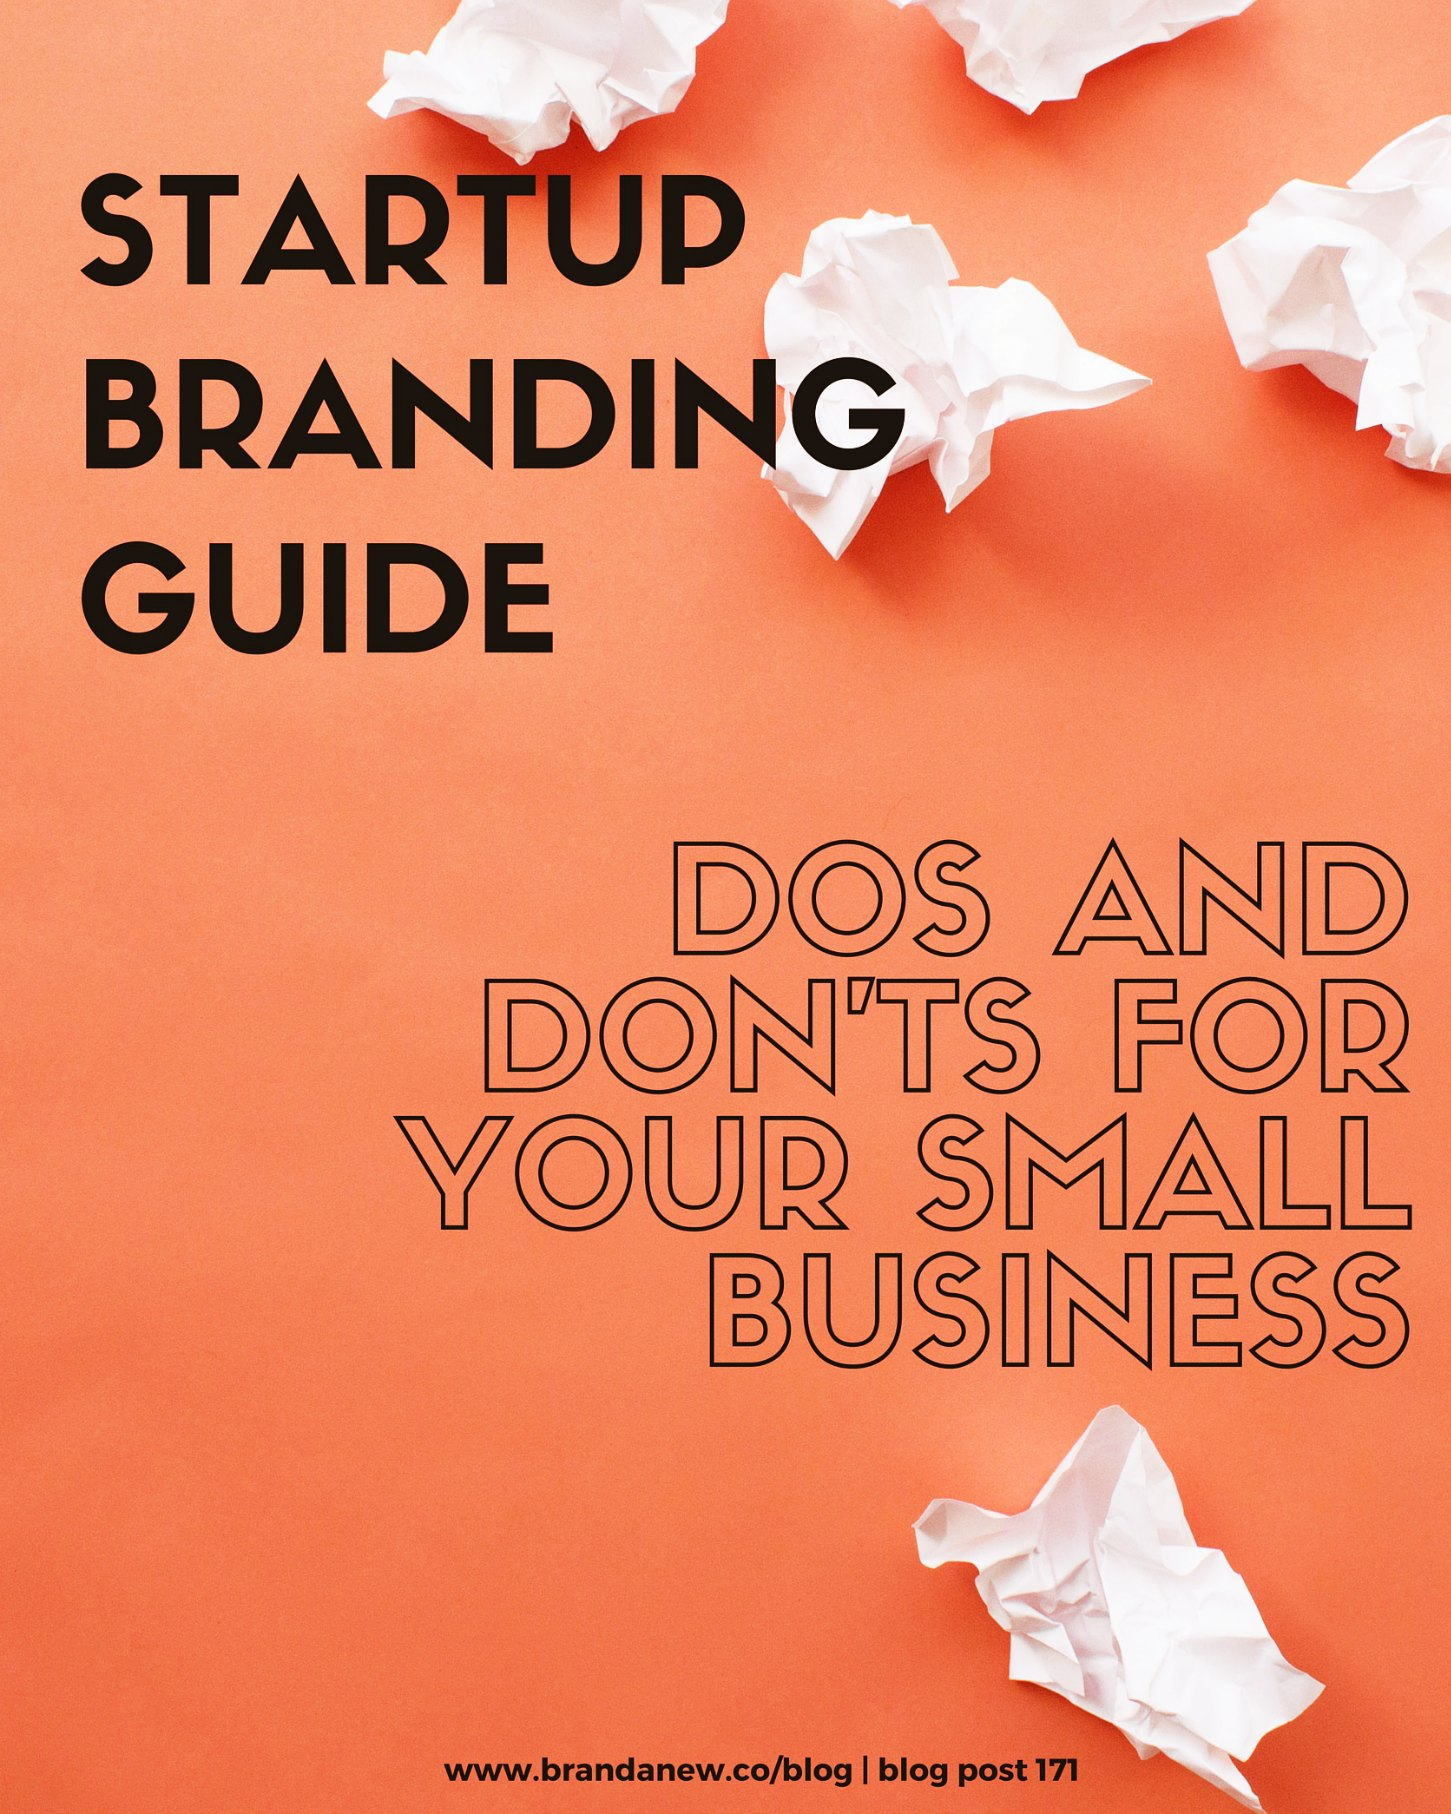 Startup Branding Dos And Don'ts For Your Small Businesses brandanew